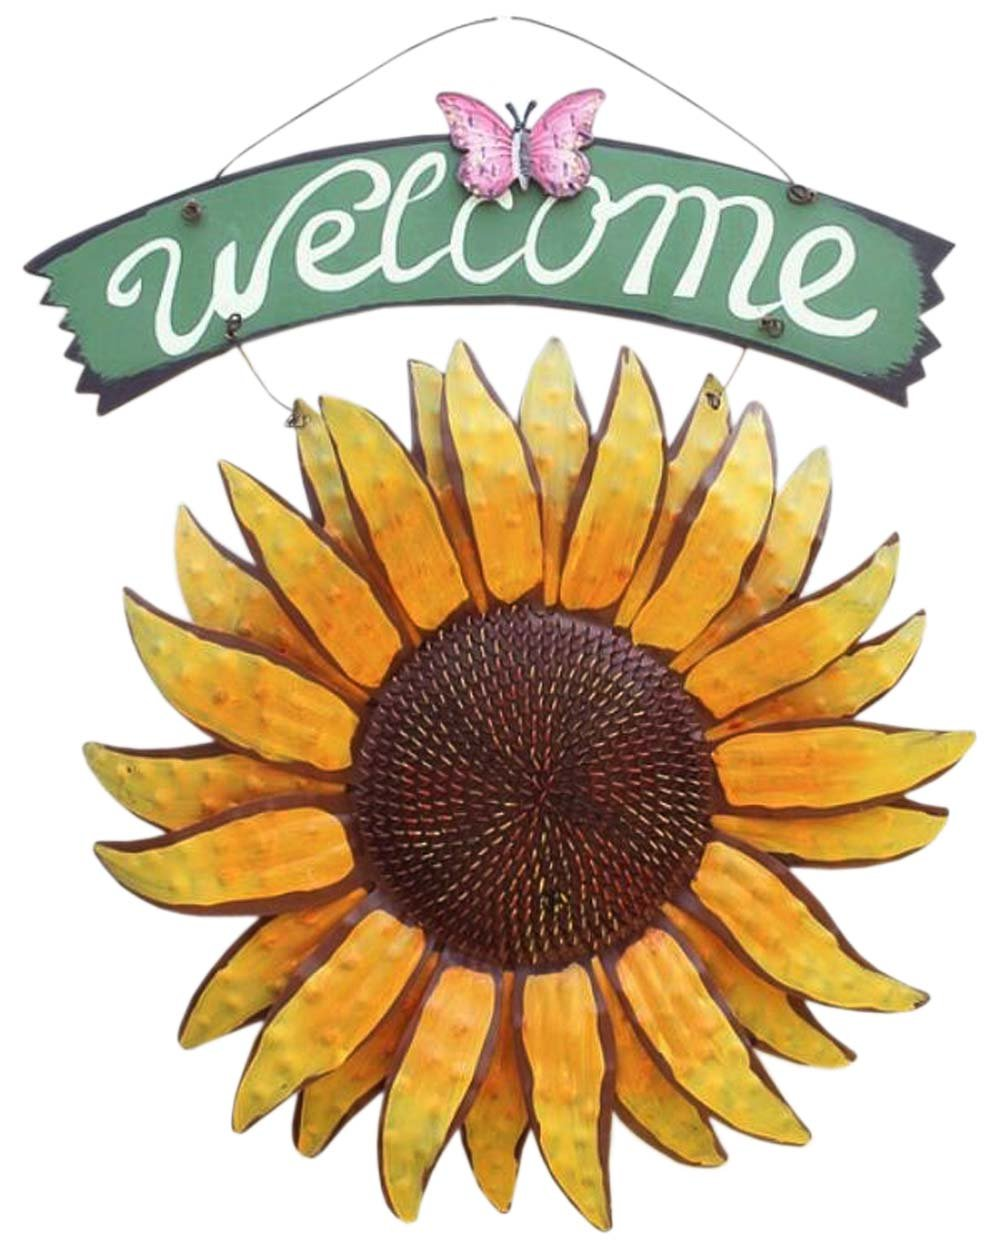 Vintage Hanging Butterfly Sunflower Welcome Sign for Door Hanging